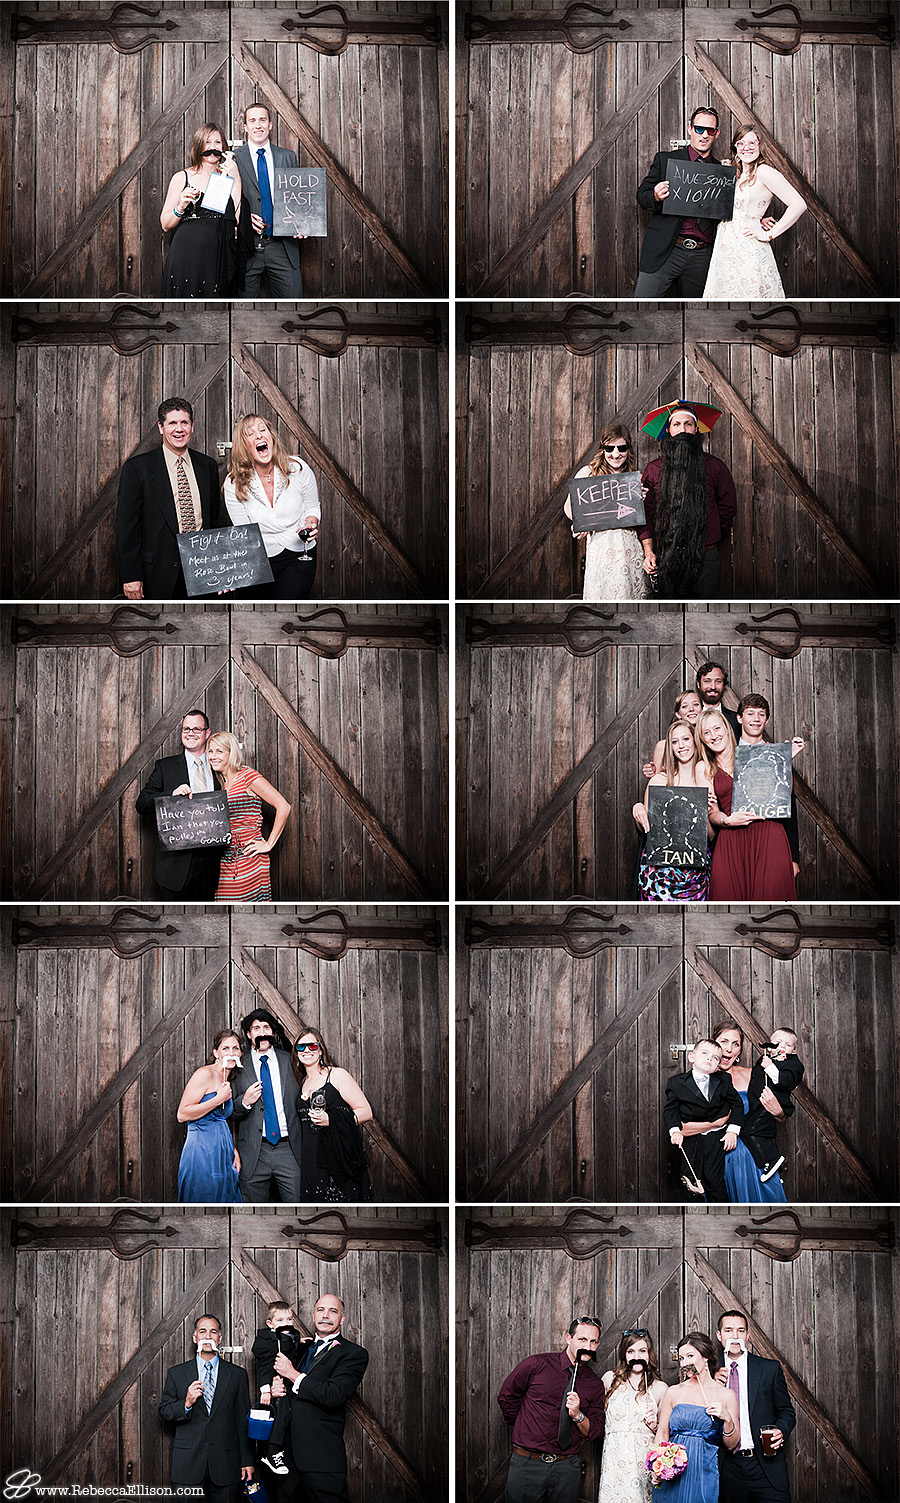 A wedding photobooth by Seattle wedding photographer, Rebecca Ellison